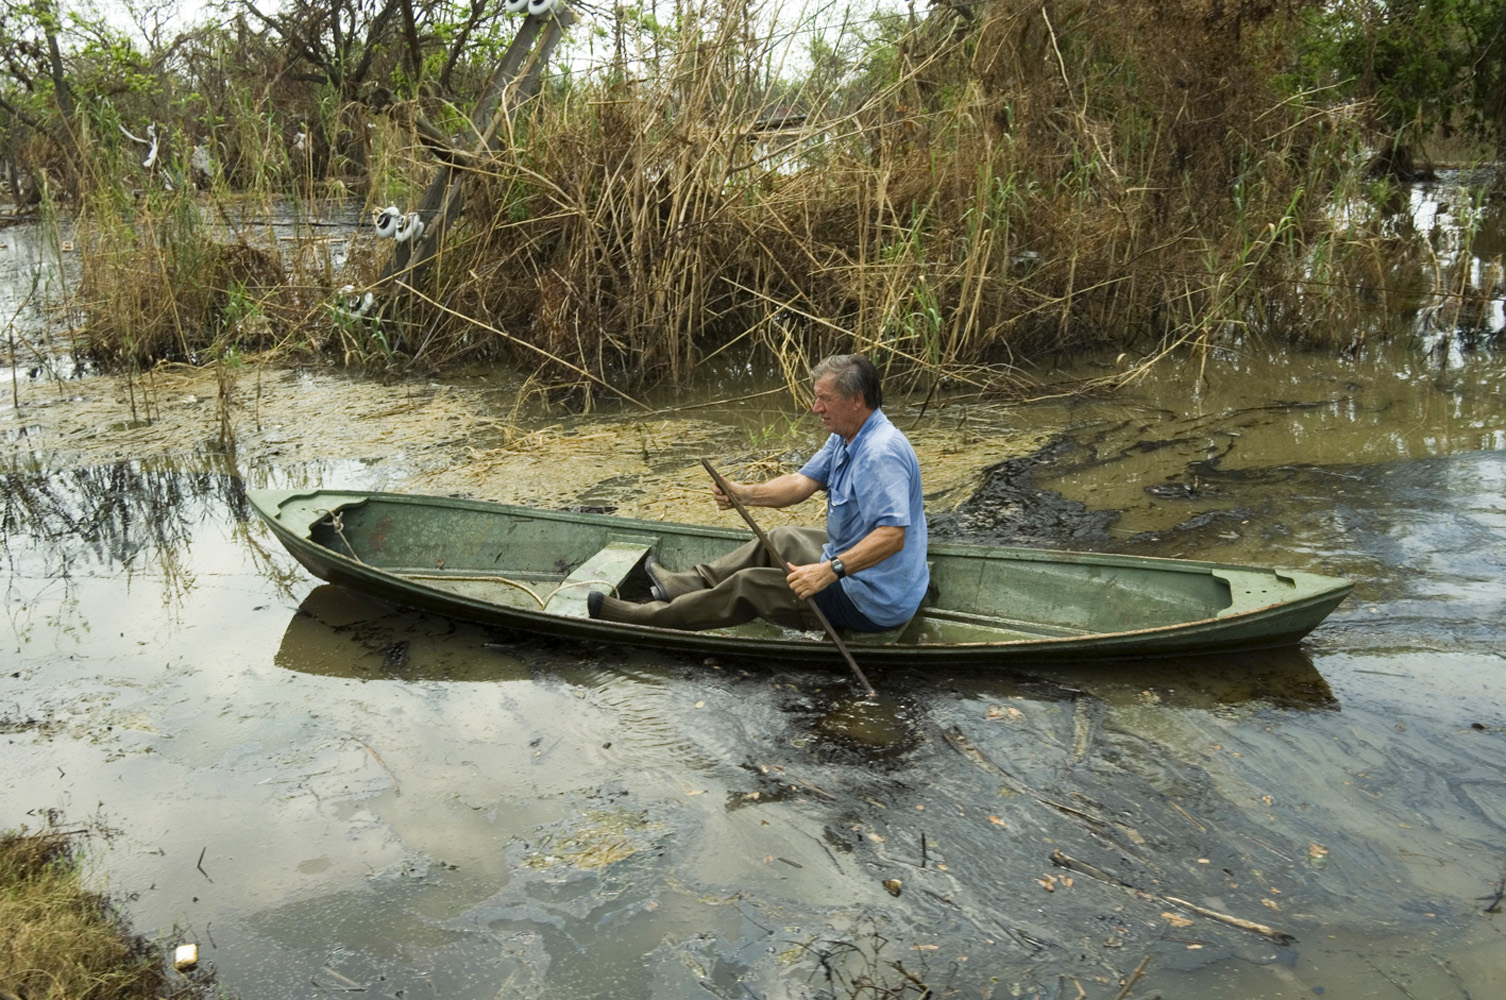 17 September 2005 Empire - Roko Tvrdeic paddles through contaminated water to reach his oyster boat 19 days after Hurricane Katrina hit Plaquemines Parish, southeast of New Orleans. Mr. Tvrdeic emigrated from Croatia 33 years ago and has been farming oysters since.